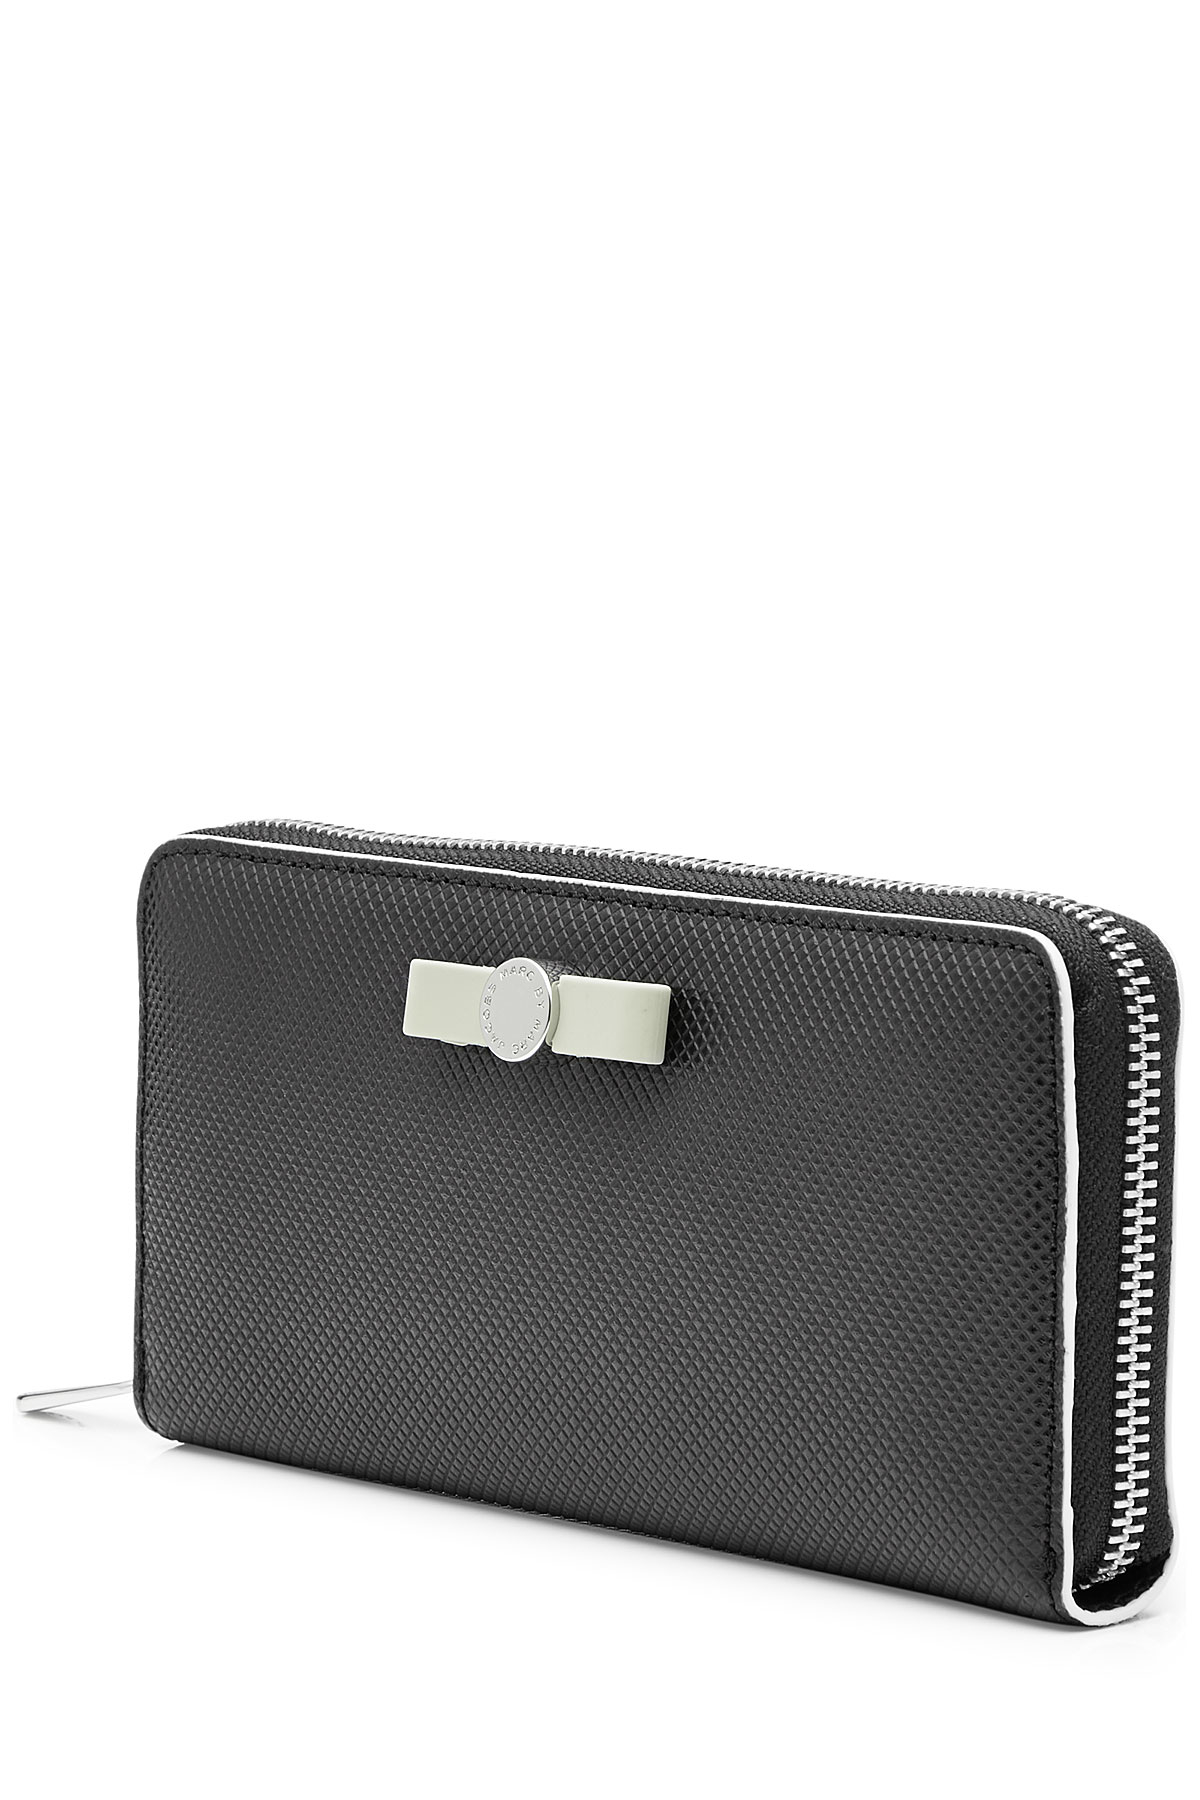 Lyst Marc By Marc Jacobs Textured Leather Zip Around